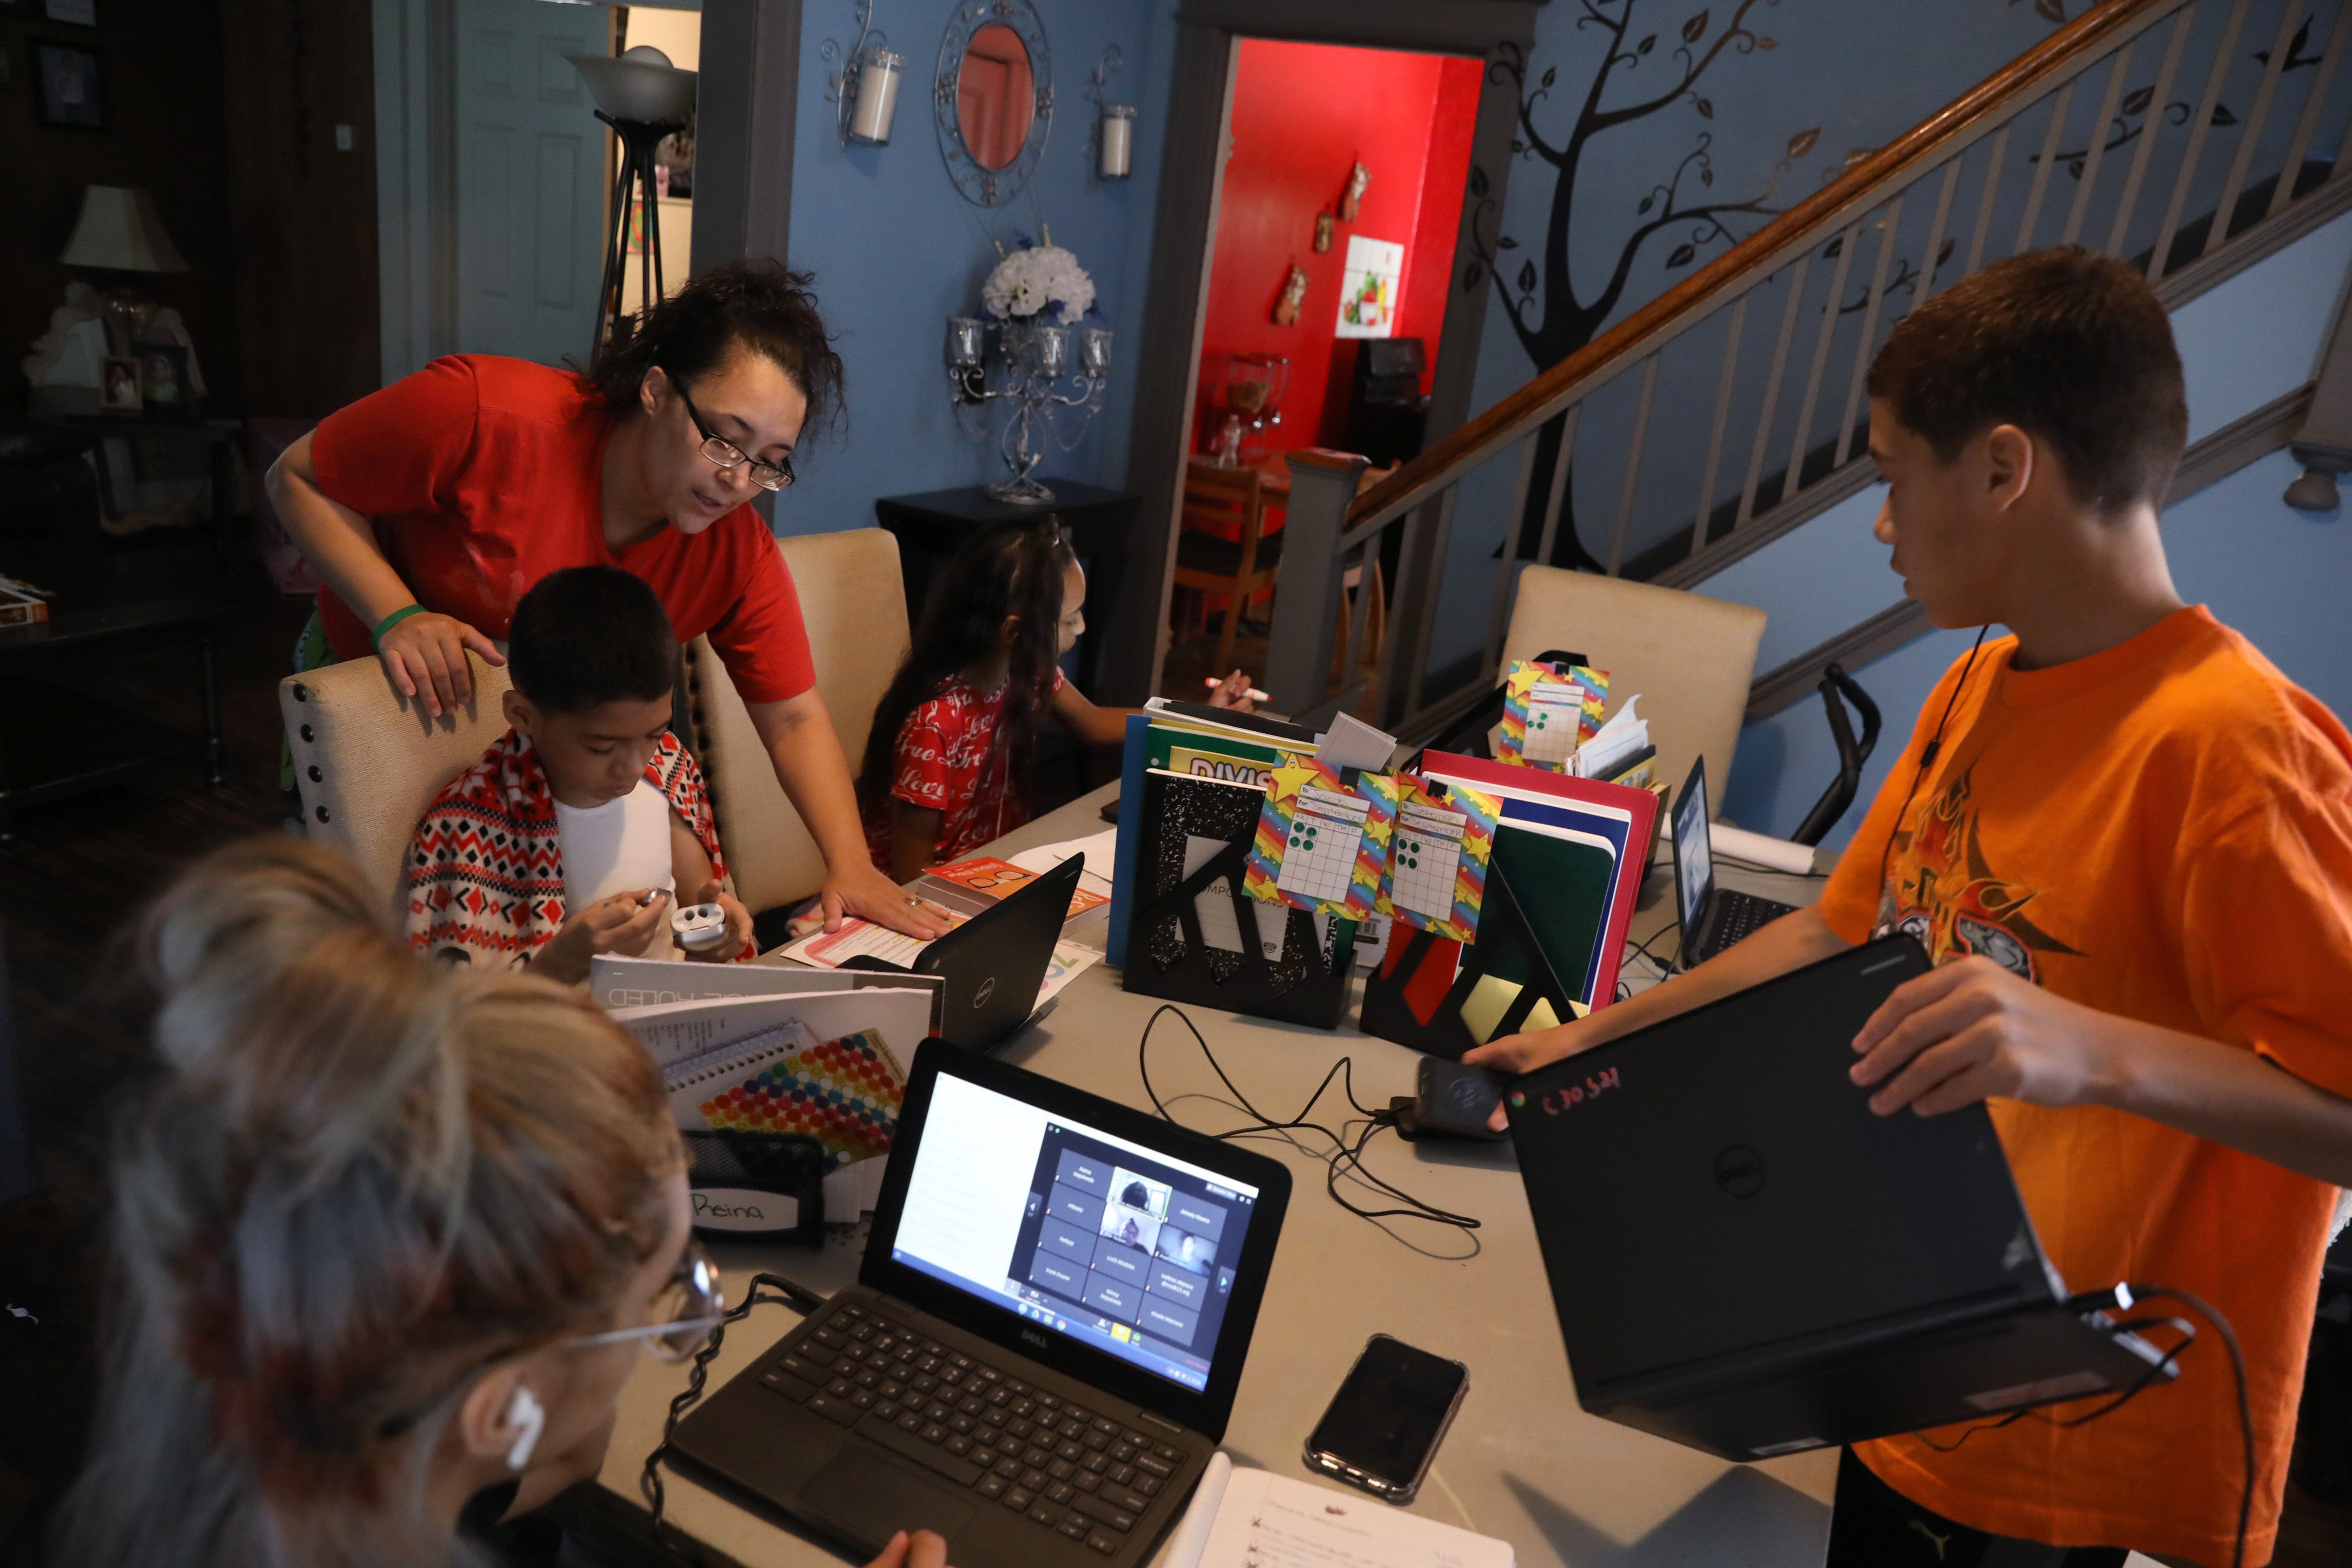 Mother Zumarie Sepulveda checks in on the progress of son Jacob, a fifth grader, and all her kids as they sit together in the living room for online learning from their schools at their home in Rochester Friday, Sept. 25, 2020.